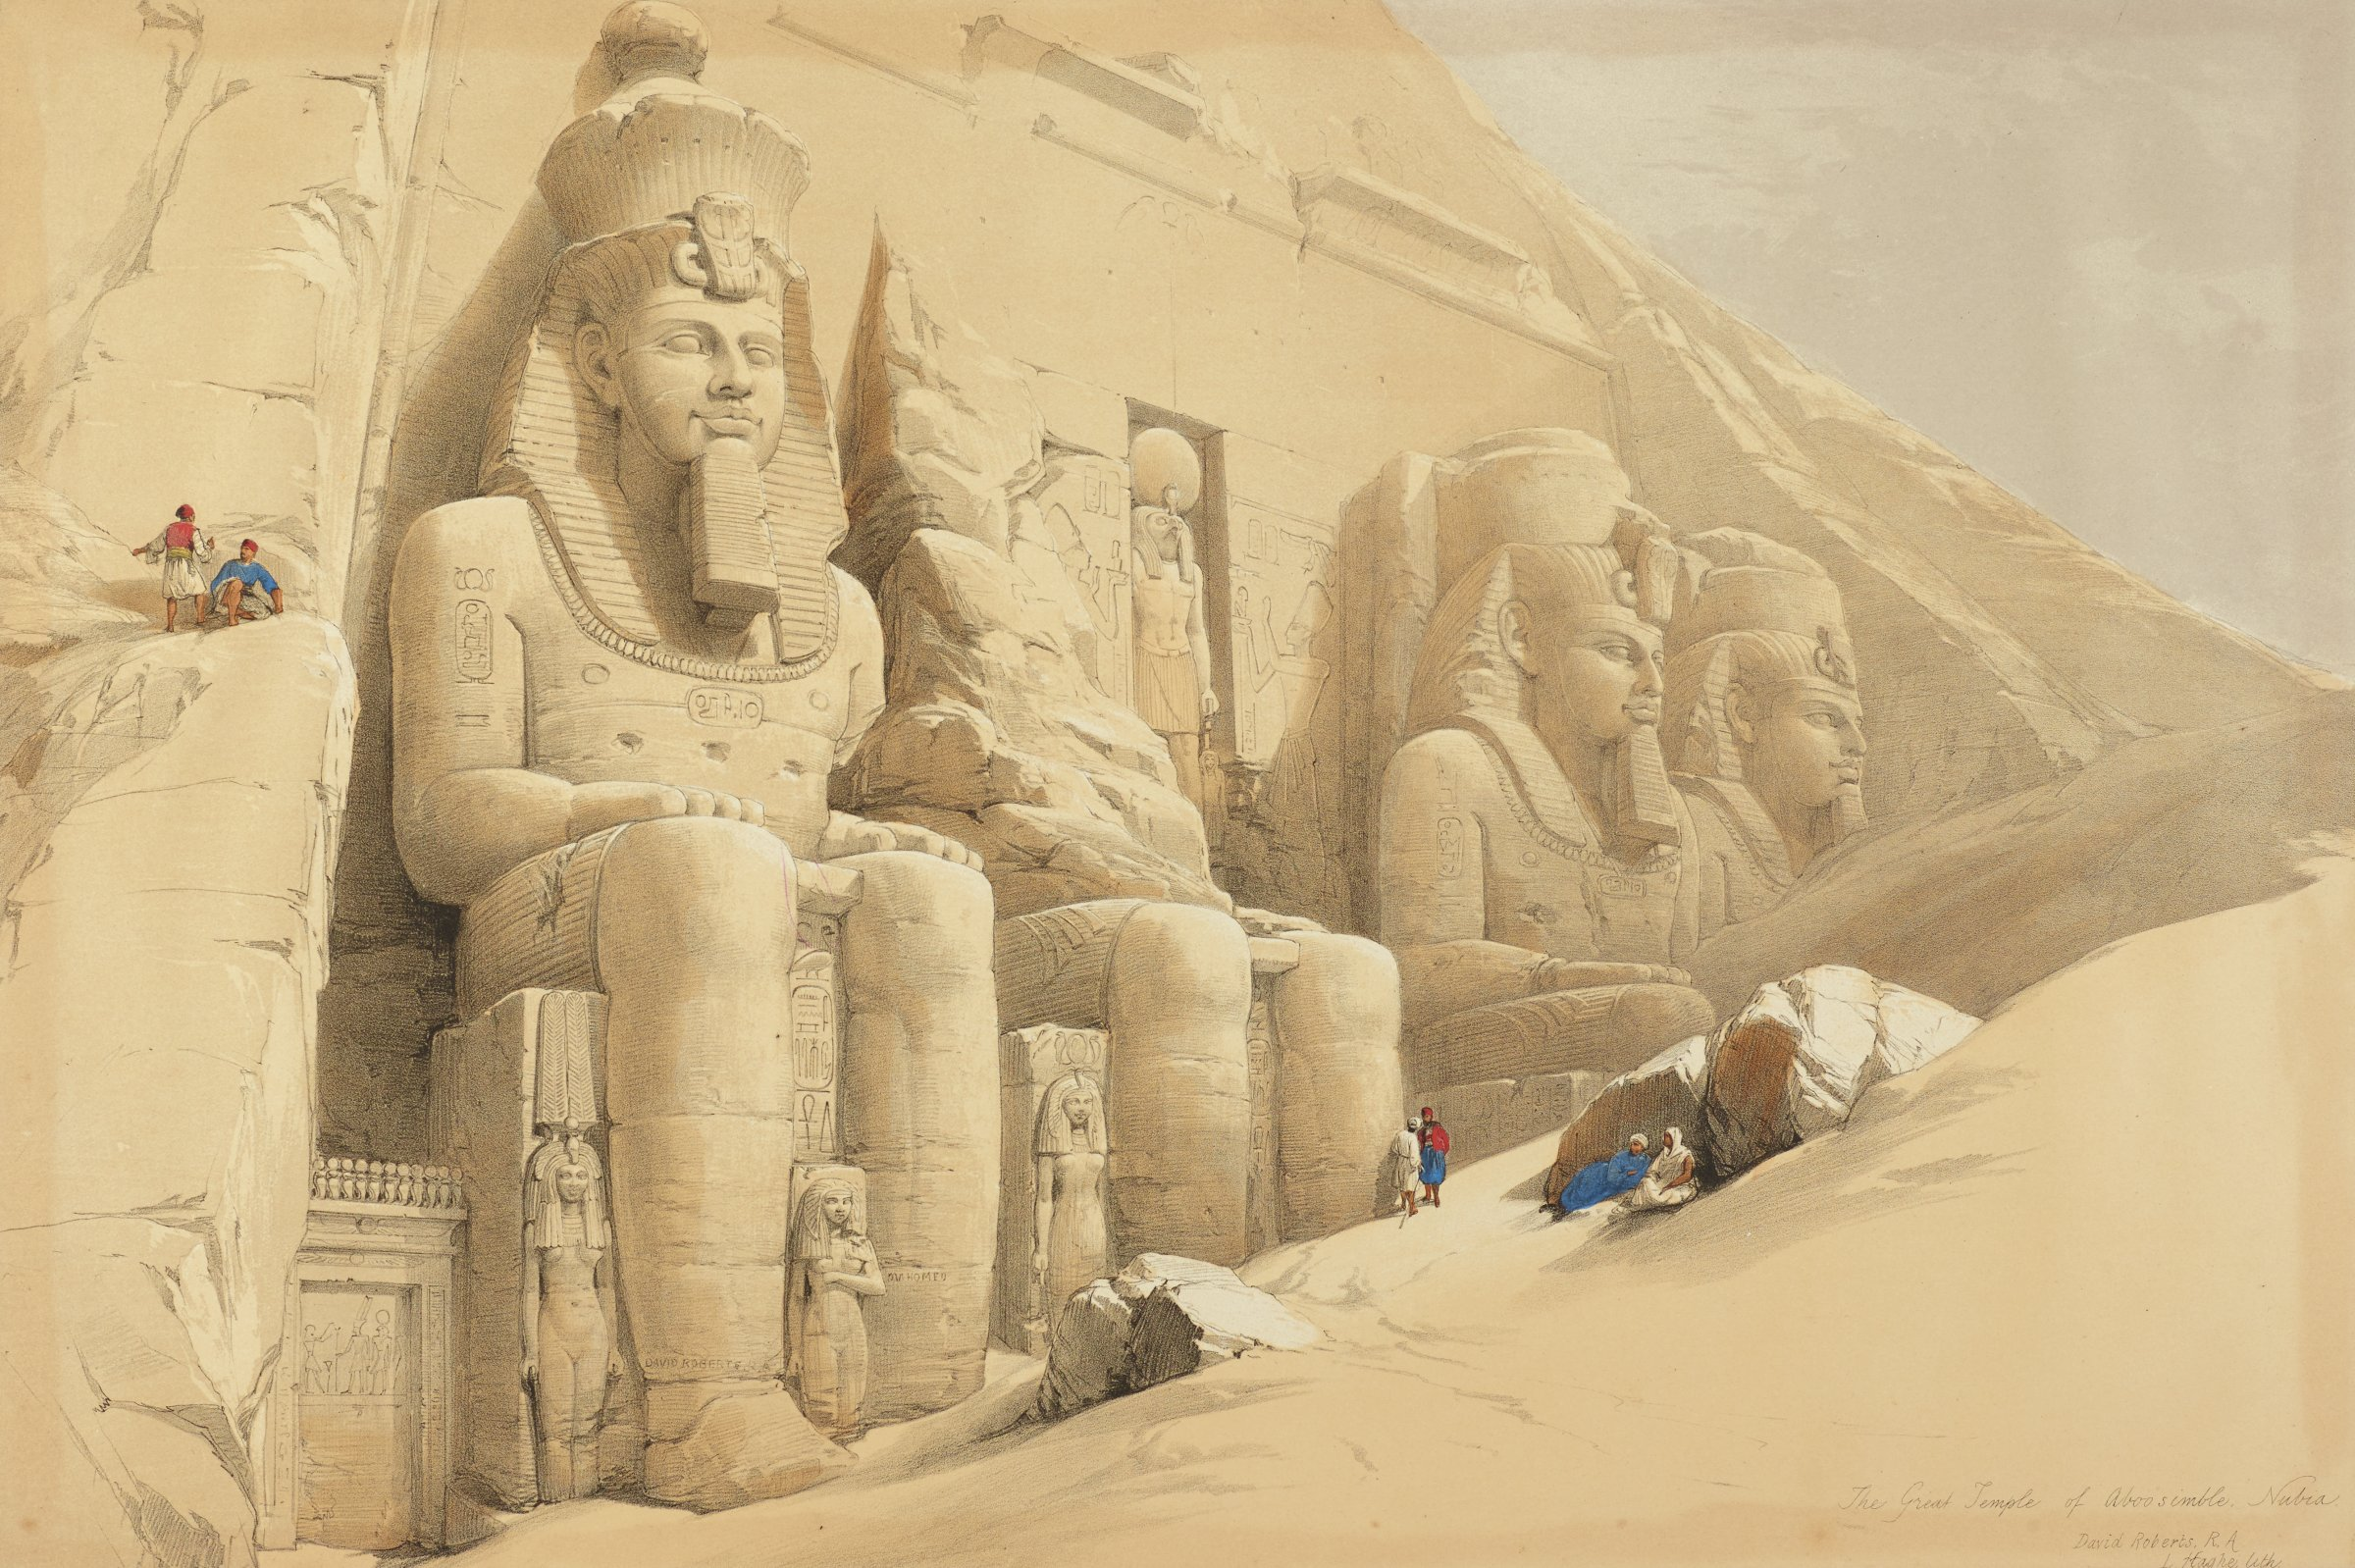 Several figures are seen outside a partially buried temple that is decorated with colossal figures and hieroglyphs.